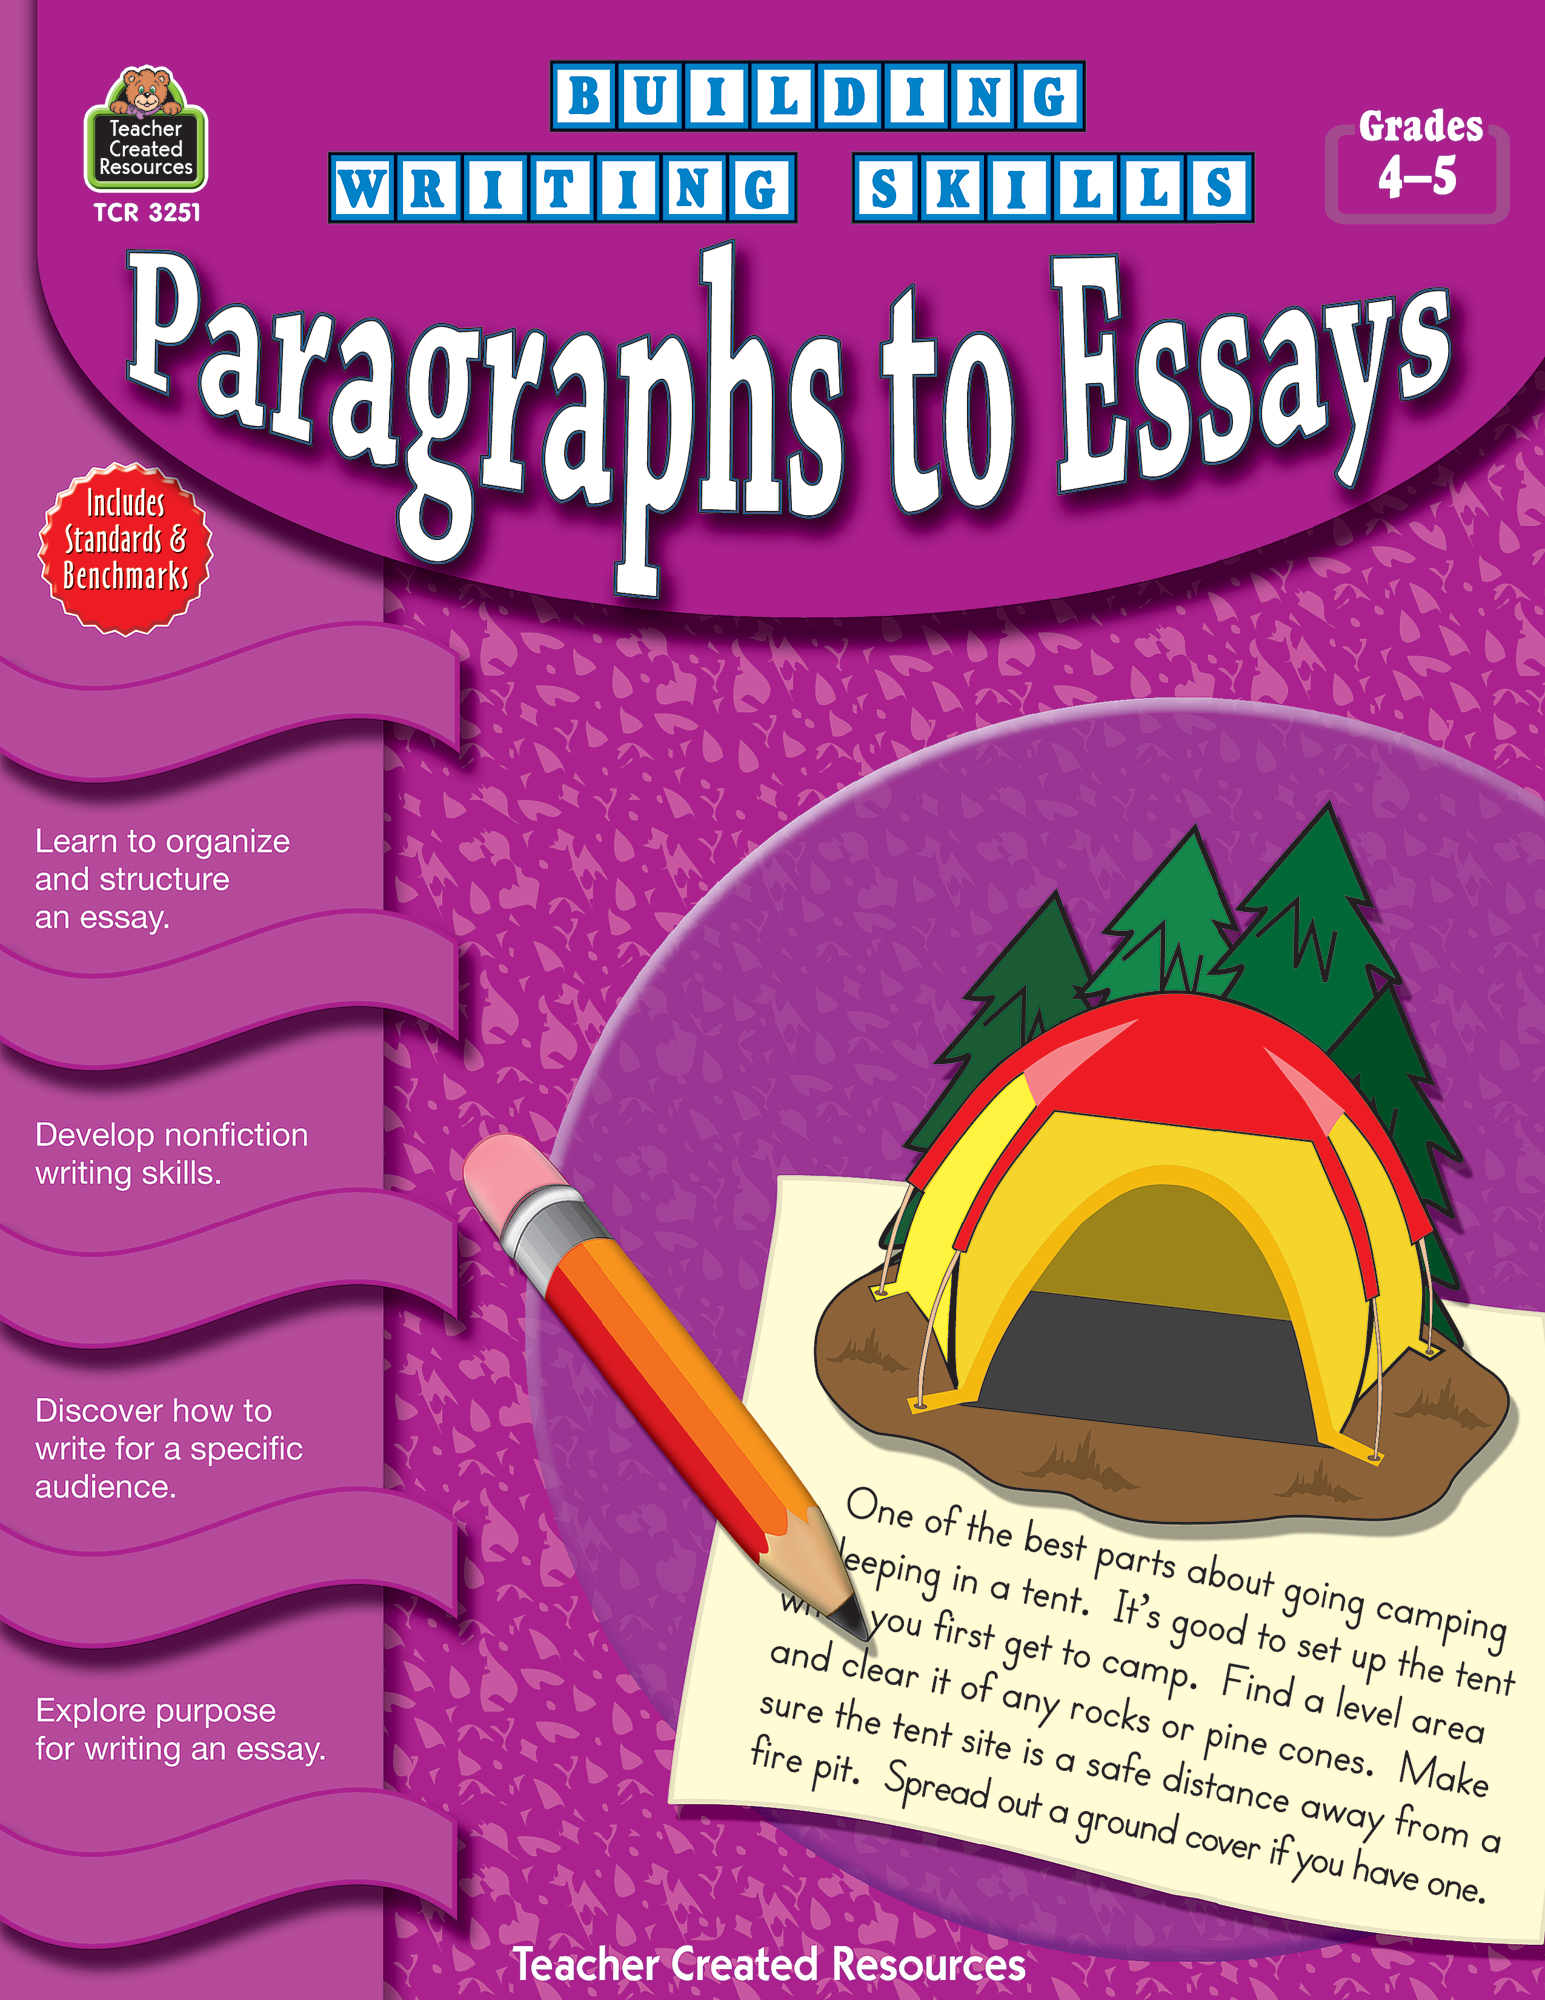 Building Writing Skills: Paragraphs to Essays (Gr. 4_5)